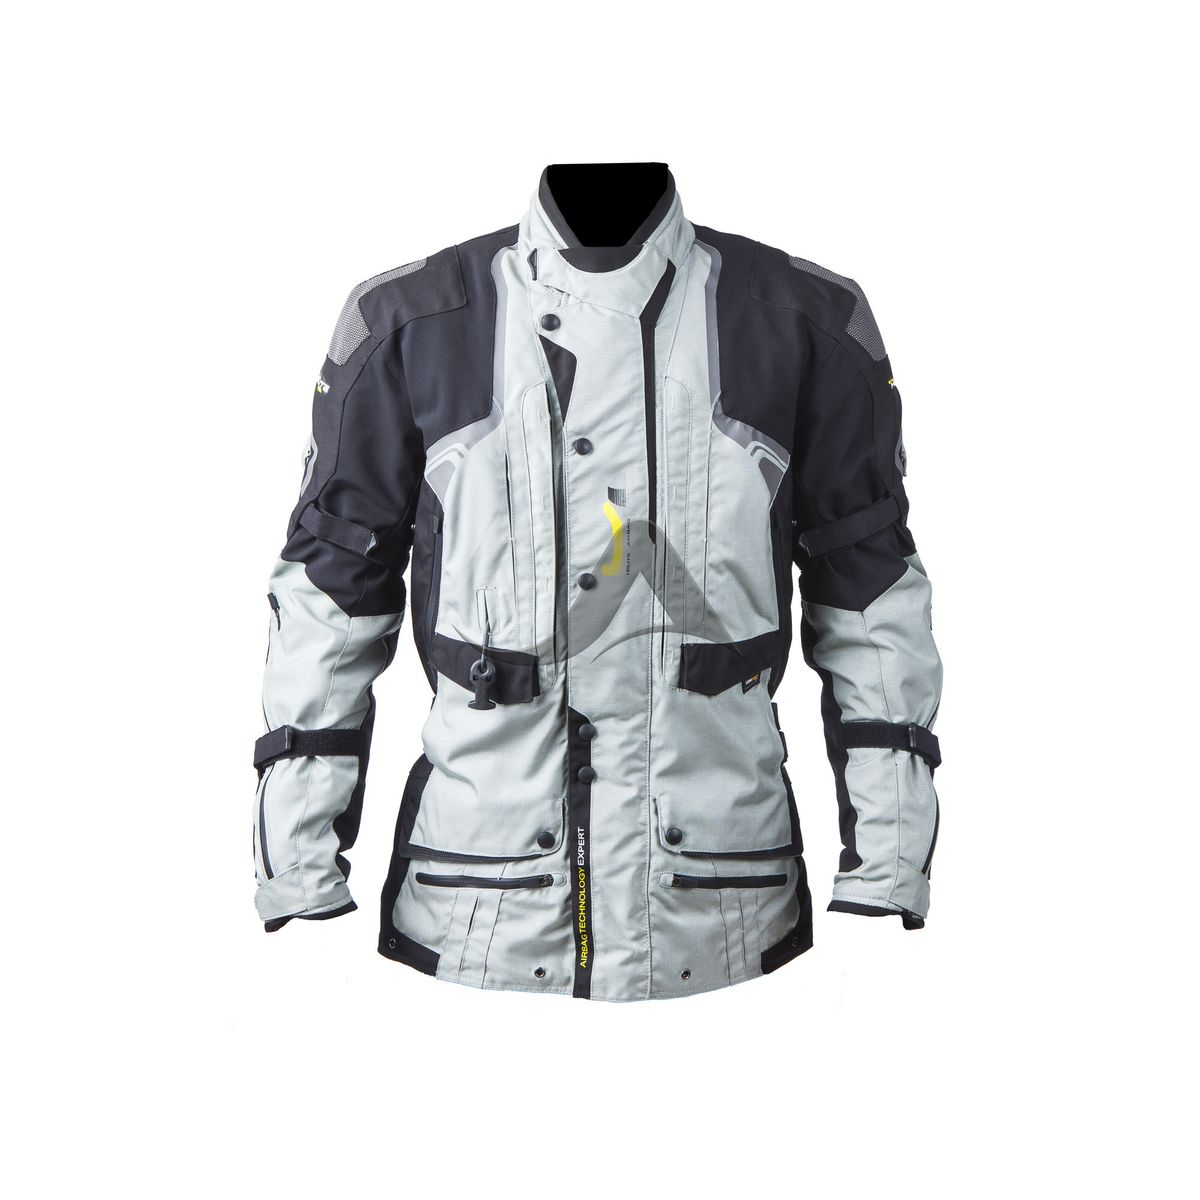 helite touring motorrad jacke b mit airbag in grau. Black Bedroom Furniture Sets. Home Design Ideas